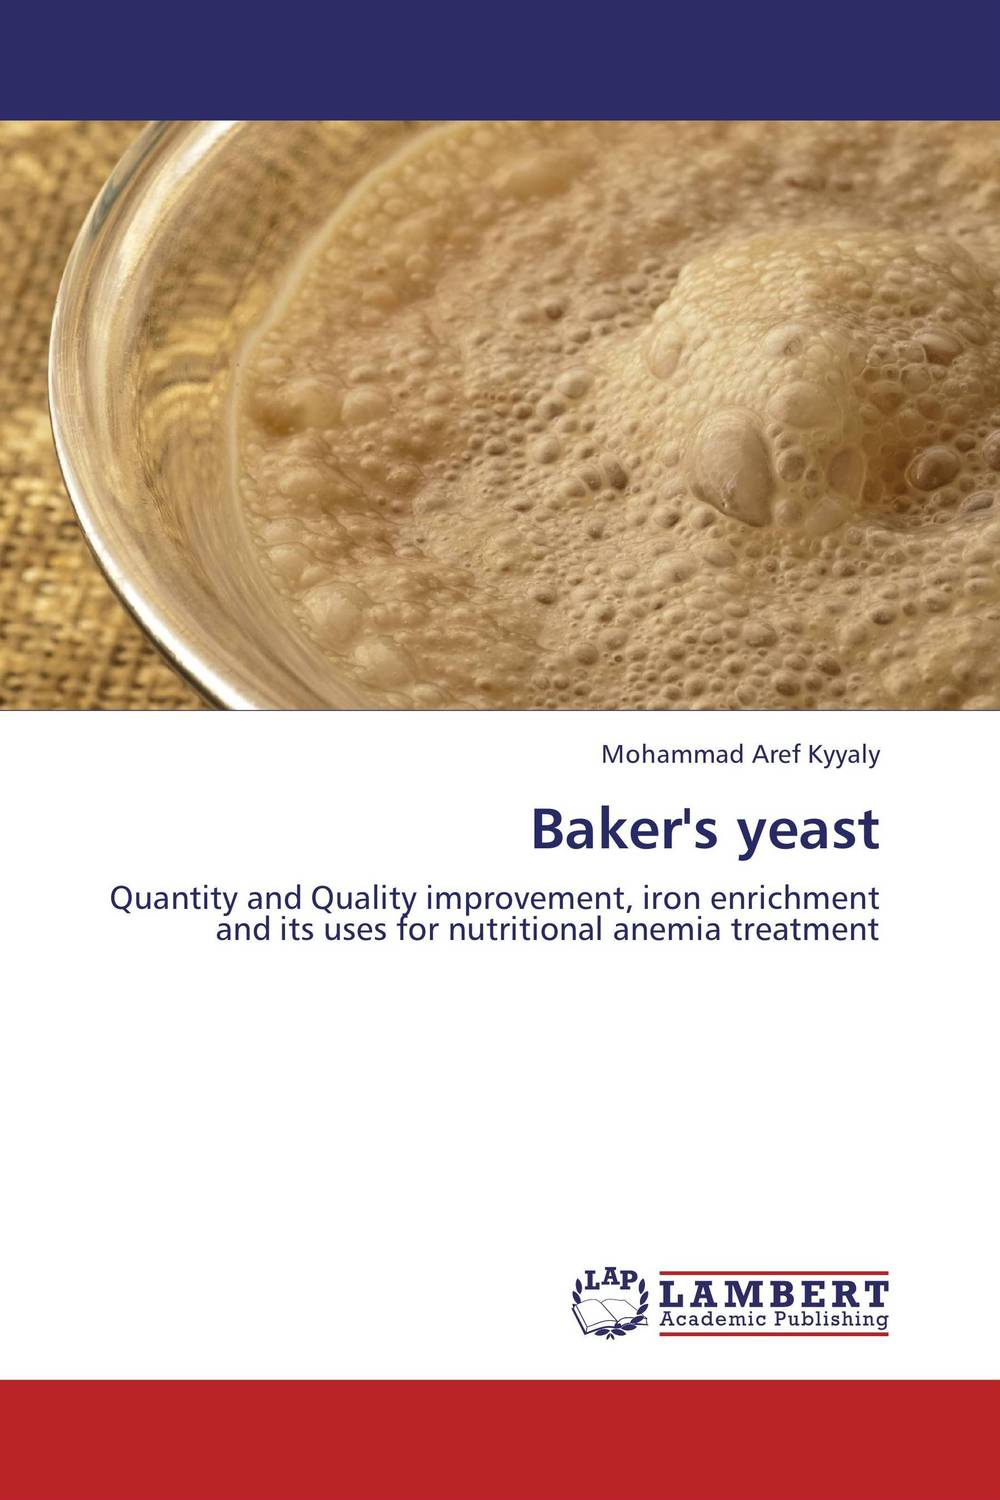 Baker's yeast lipid production by oleaginous yeasts